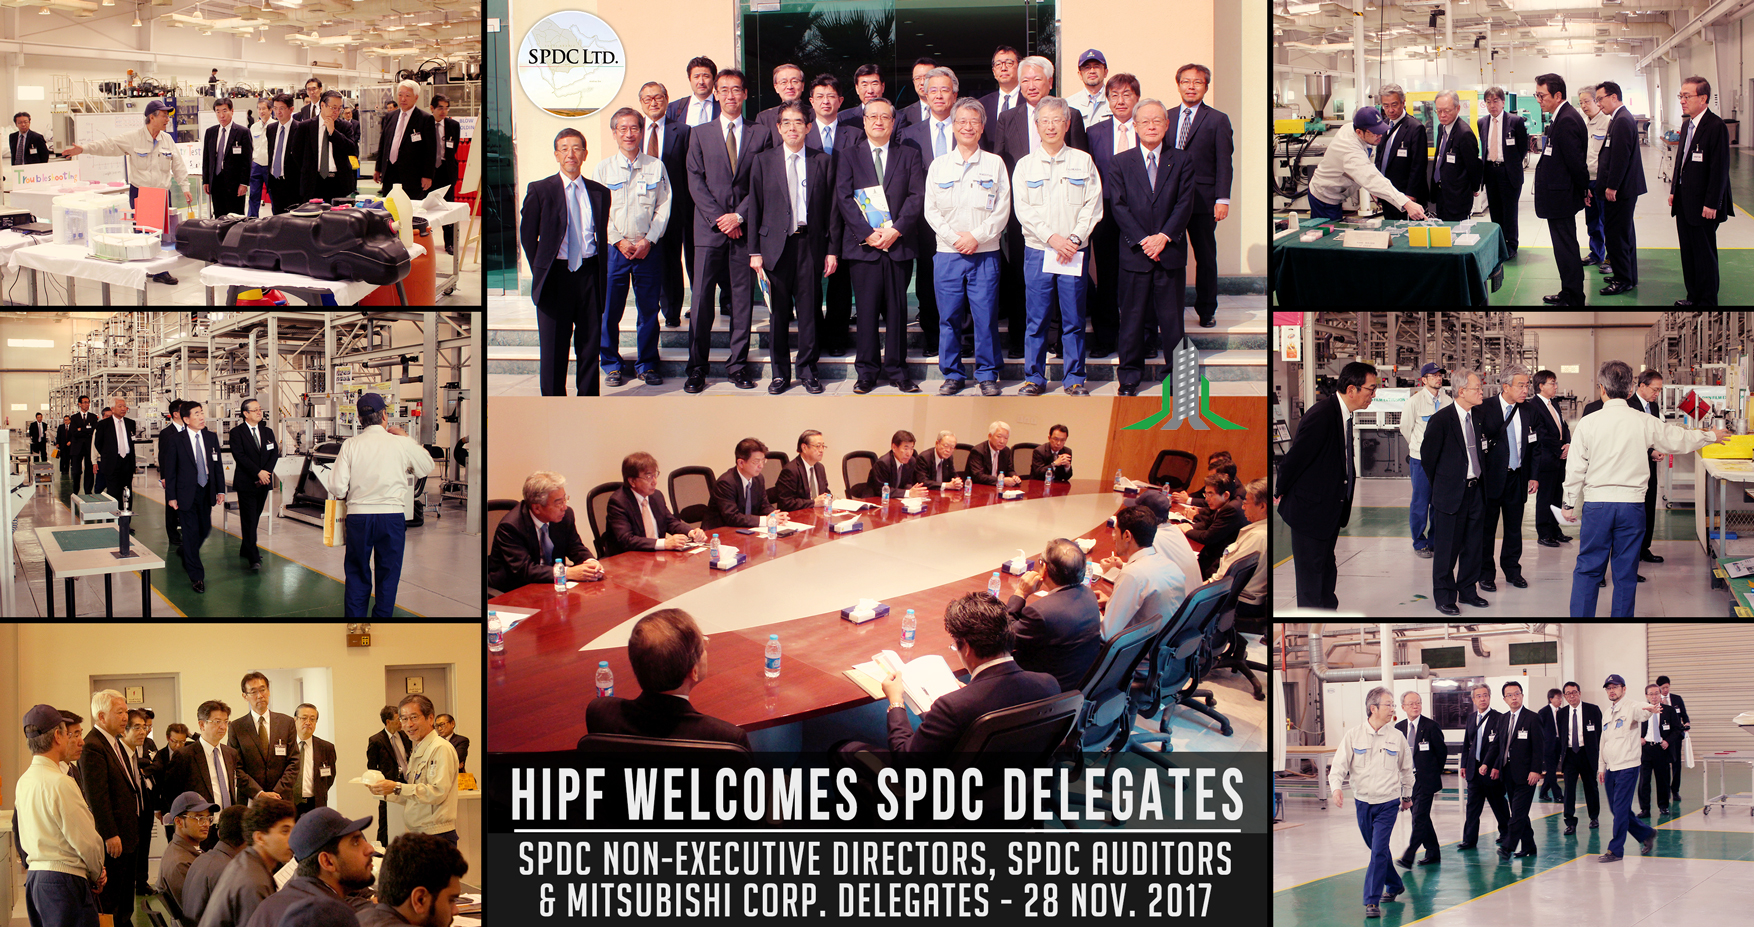 Non-Executive Directors of SPDC visit